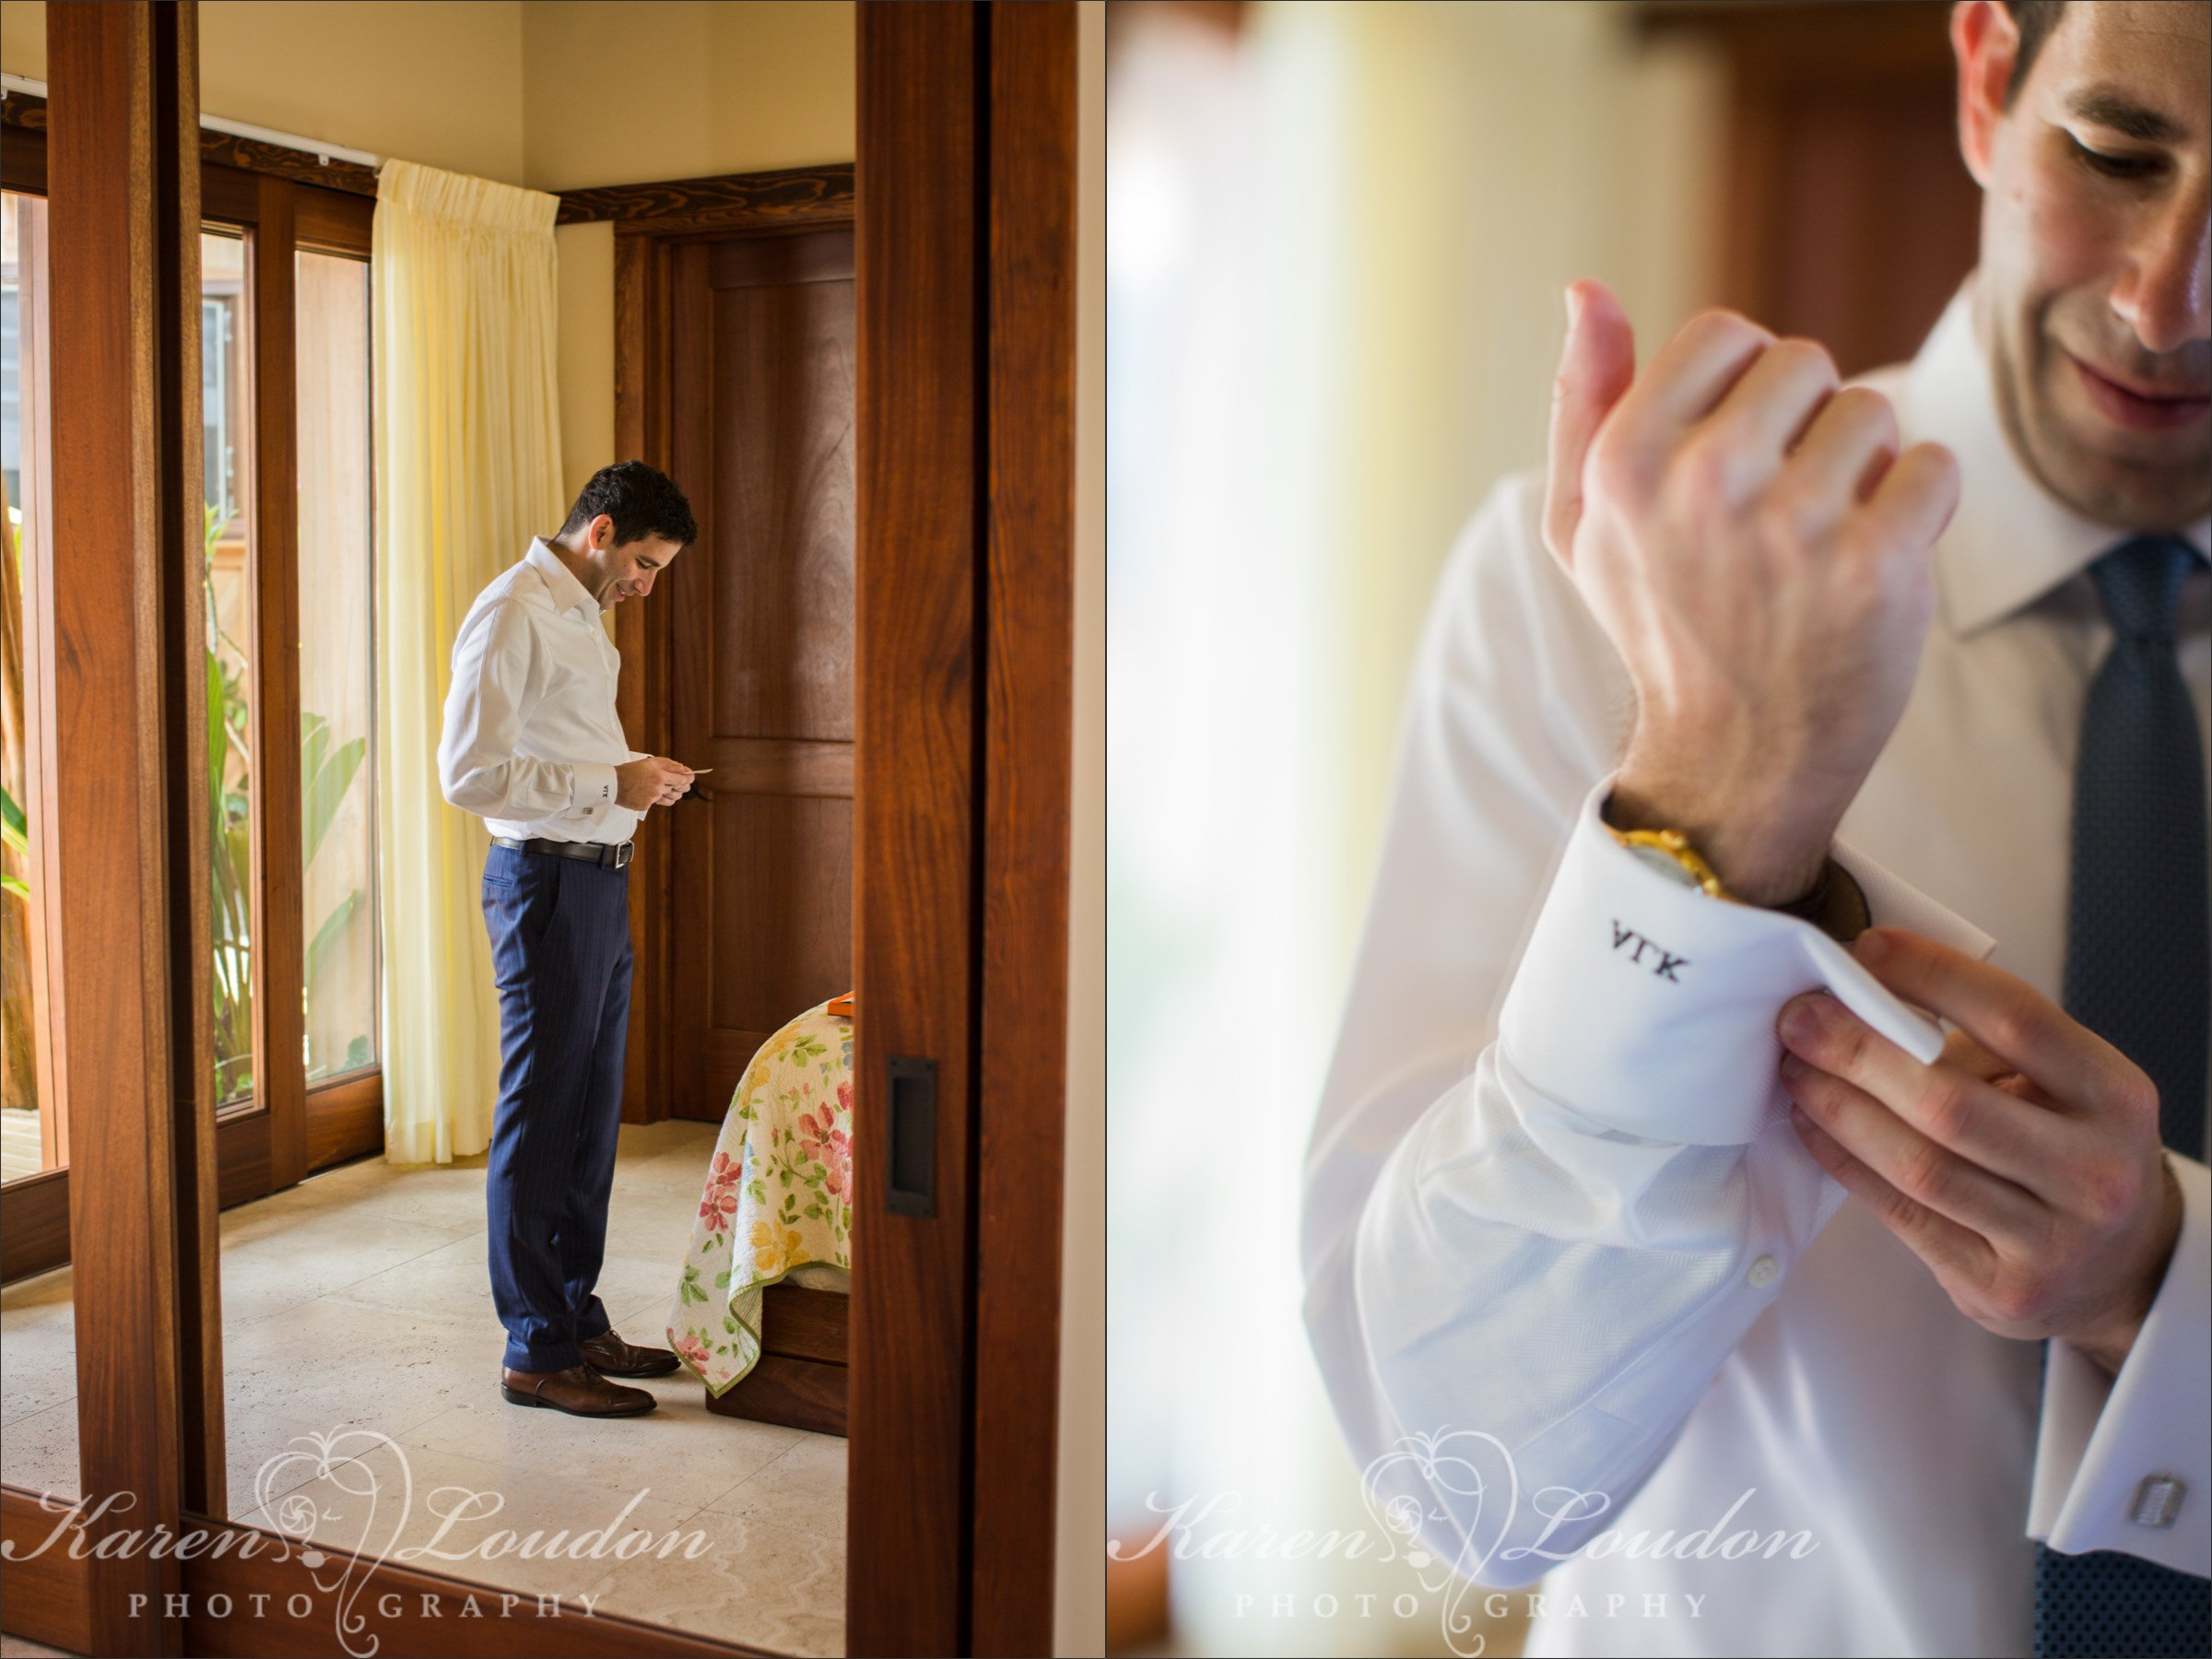 Kona Groom Wedding photographer